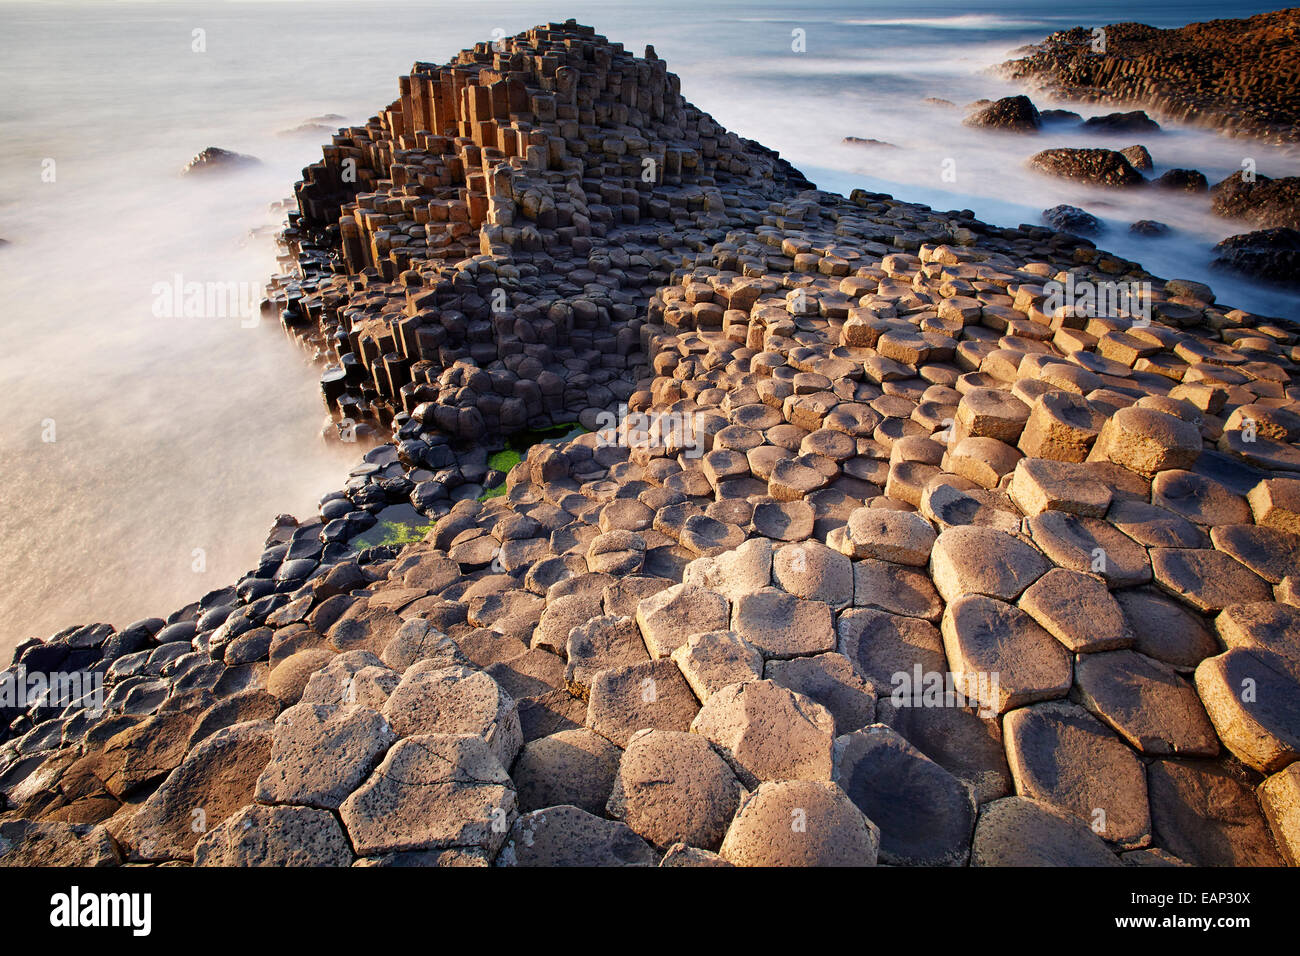 Giant's Causeway Northern Ireland - Stock Image